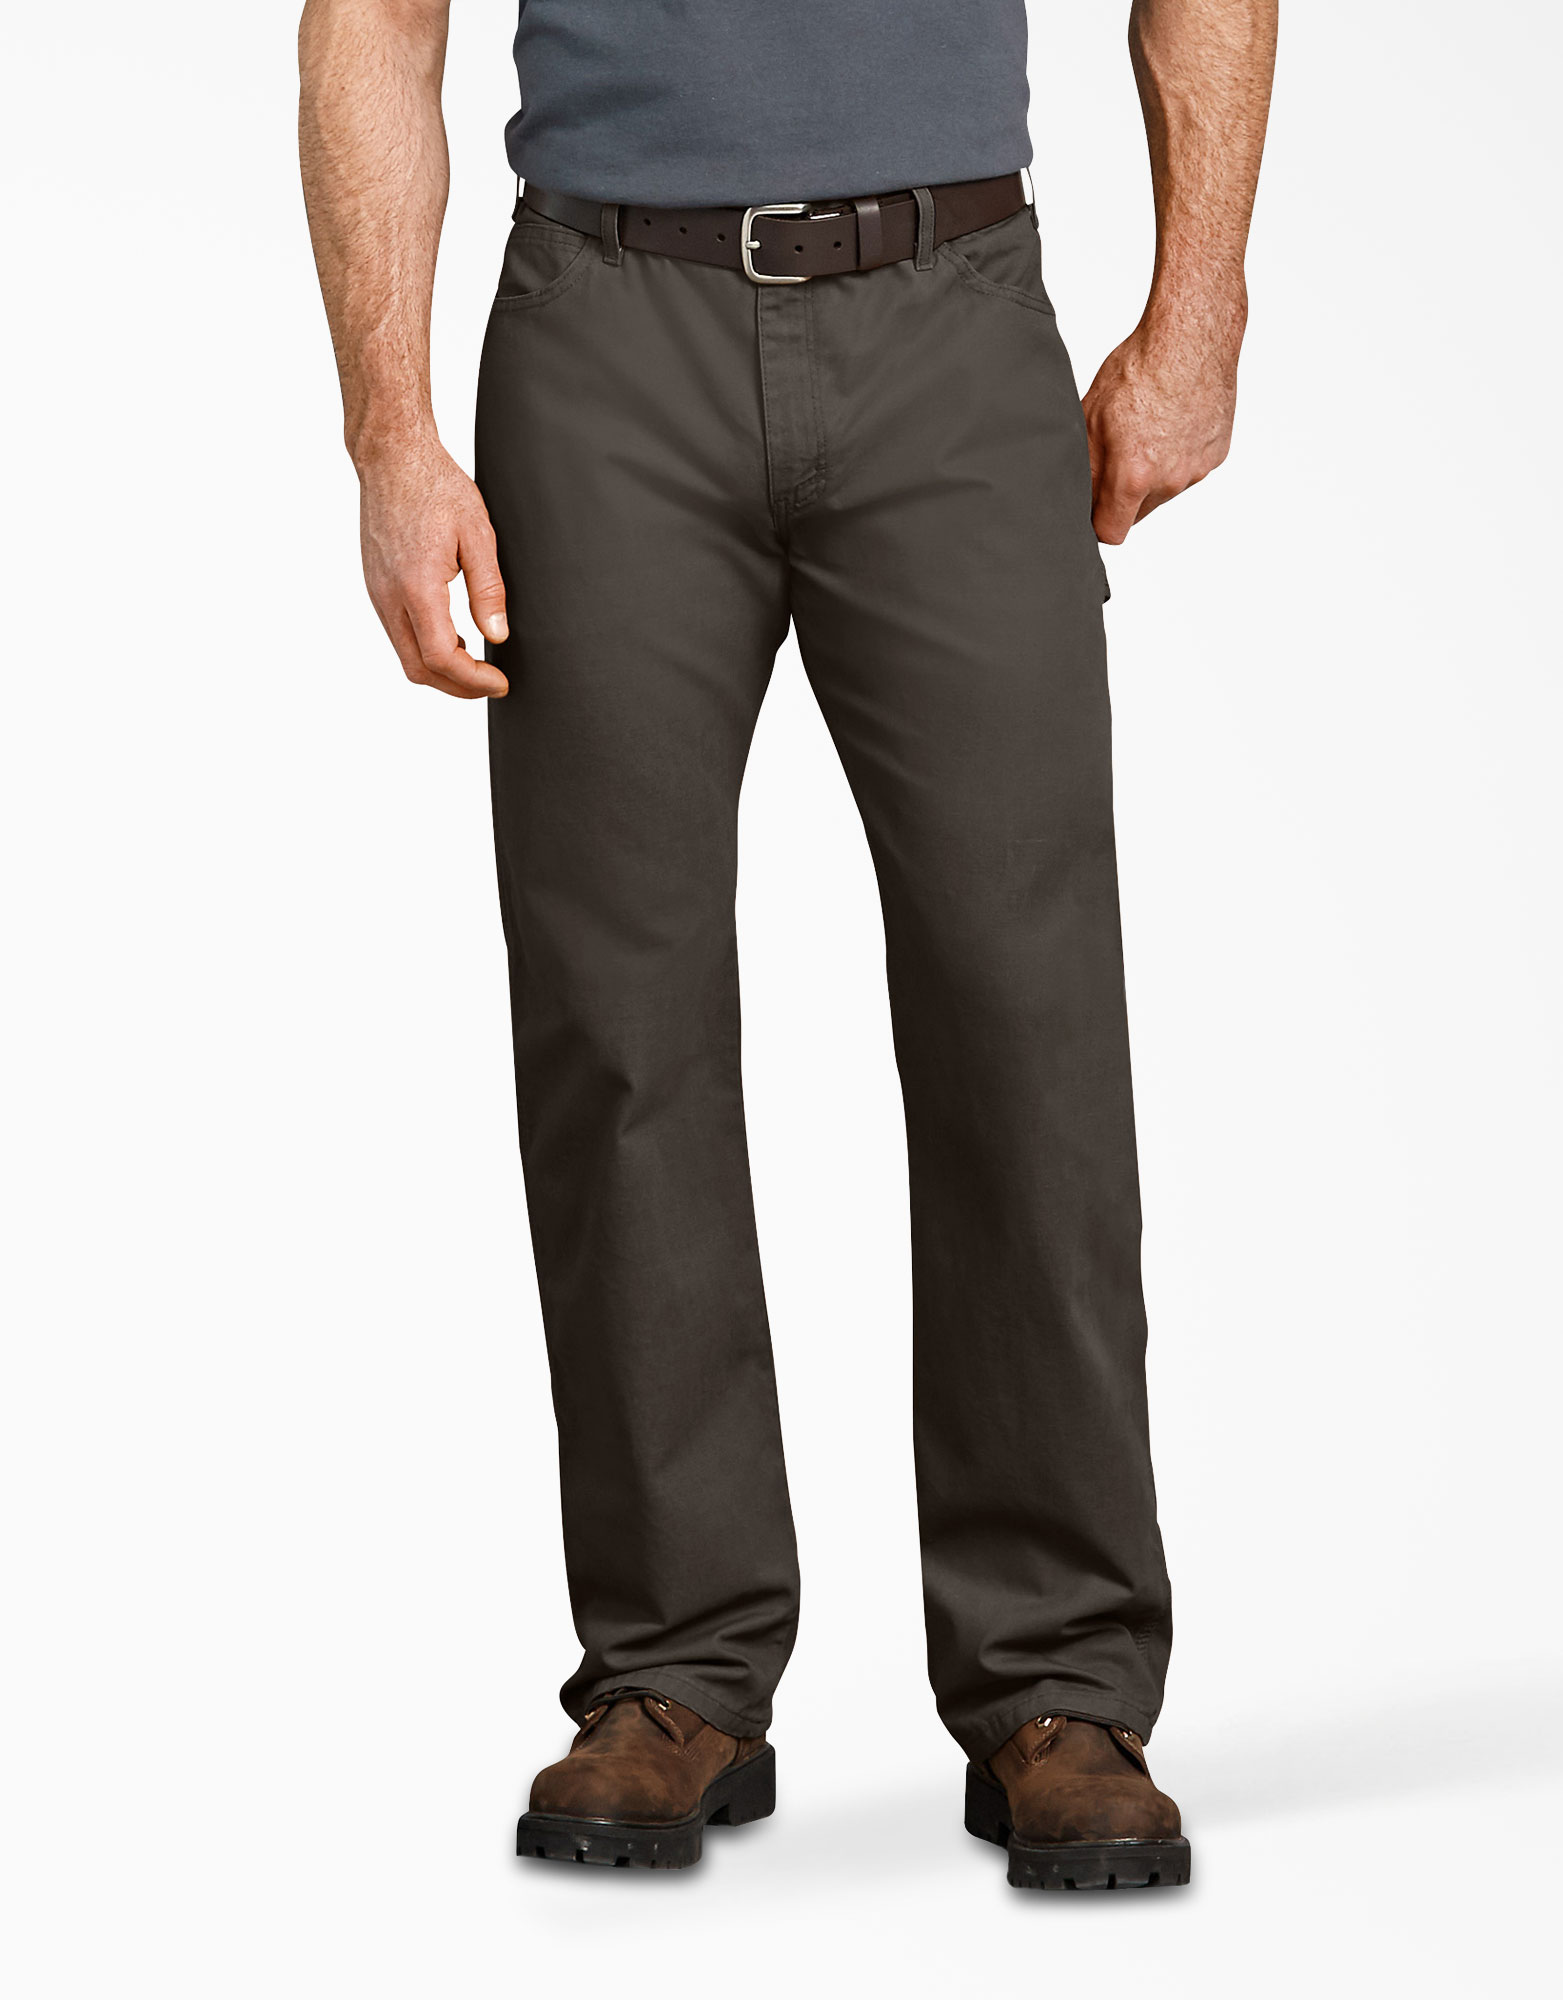 Relaxed Fit Straight Leg Carpenter Duck Jeans - Olive Green (RBV)